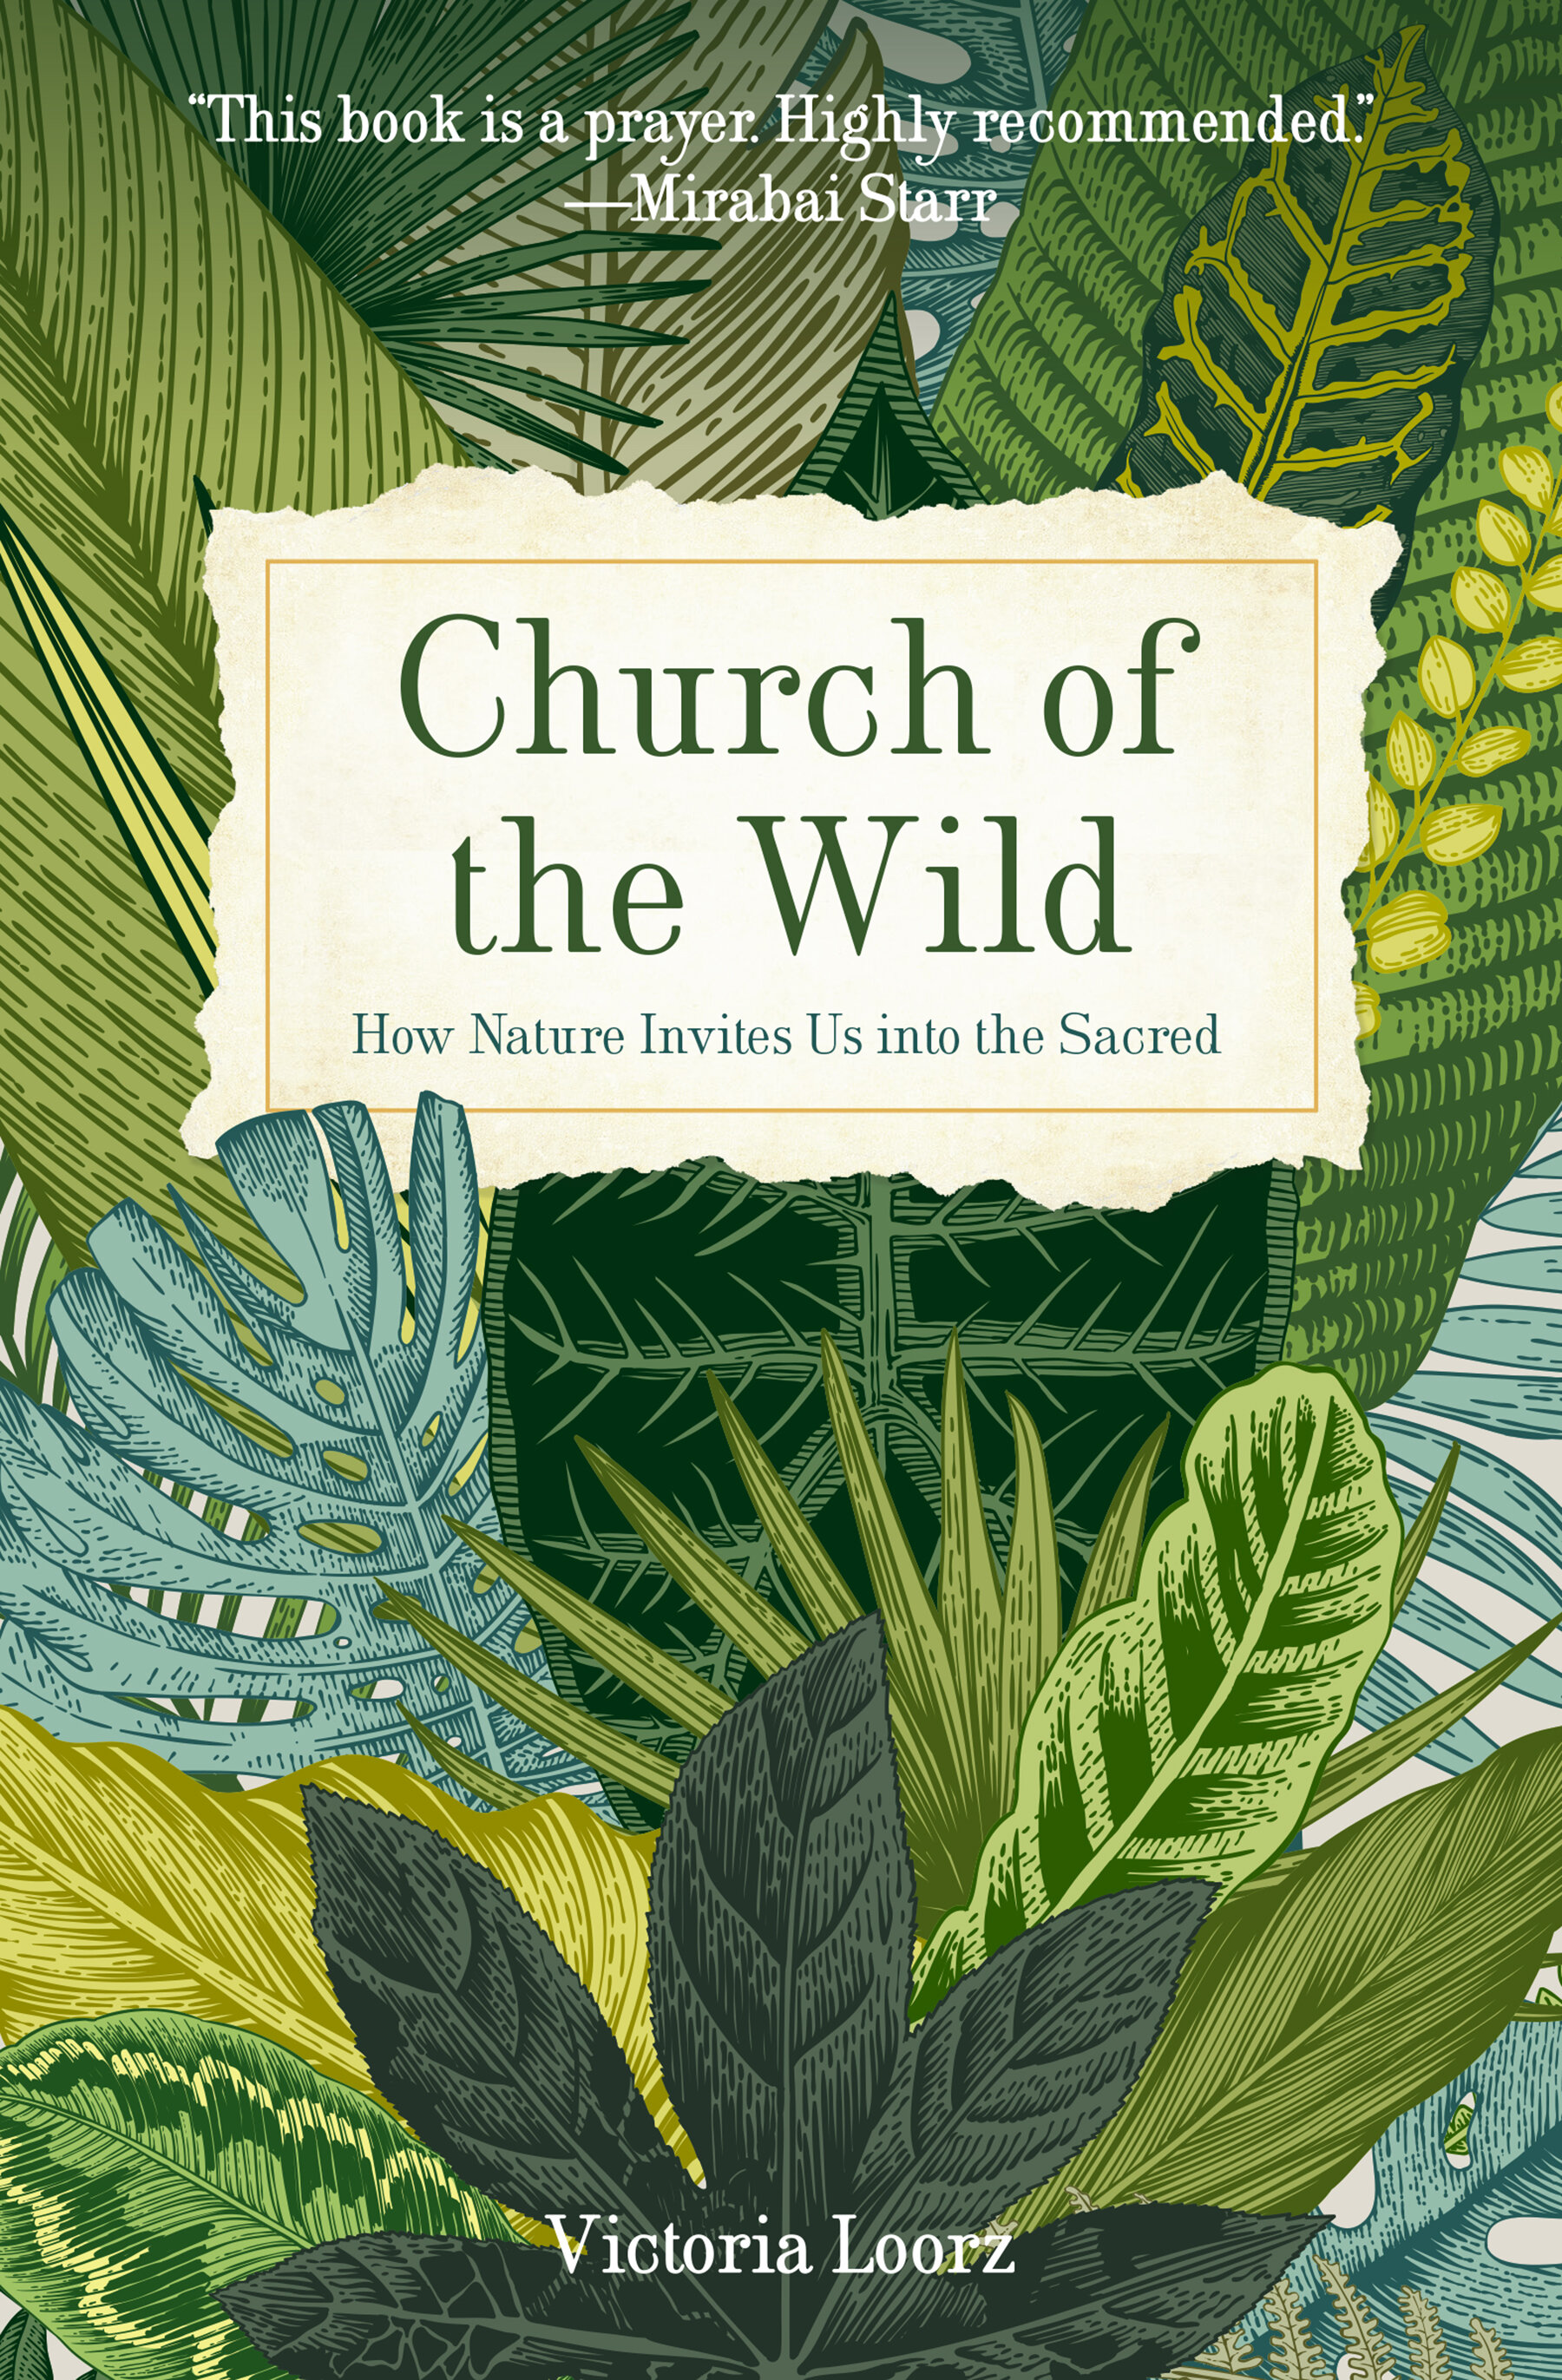 Church of the Wild: How Nature Invites Us into the Sacred